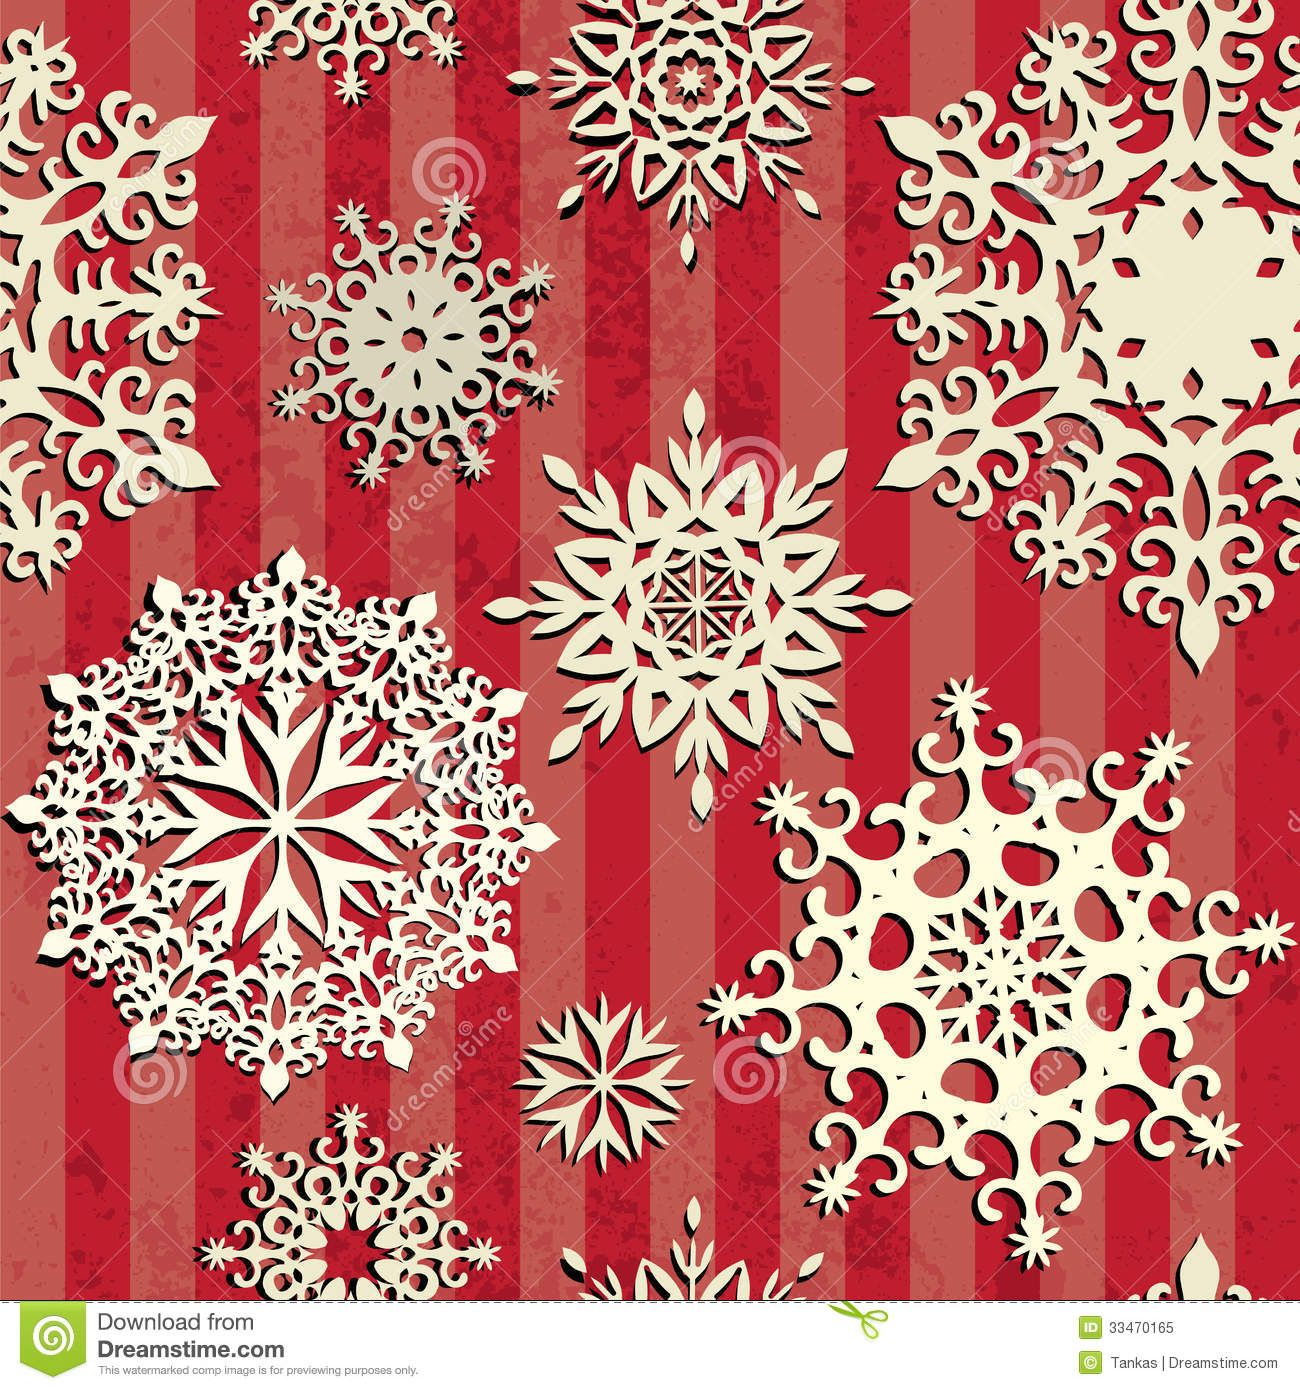 Diy Photo Backdrop For Christmas - Yahoo Image Search Results